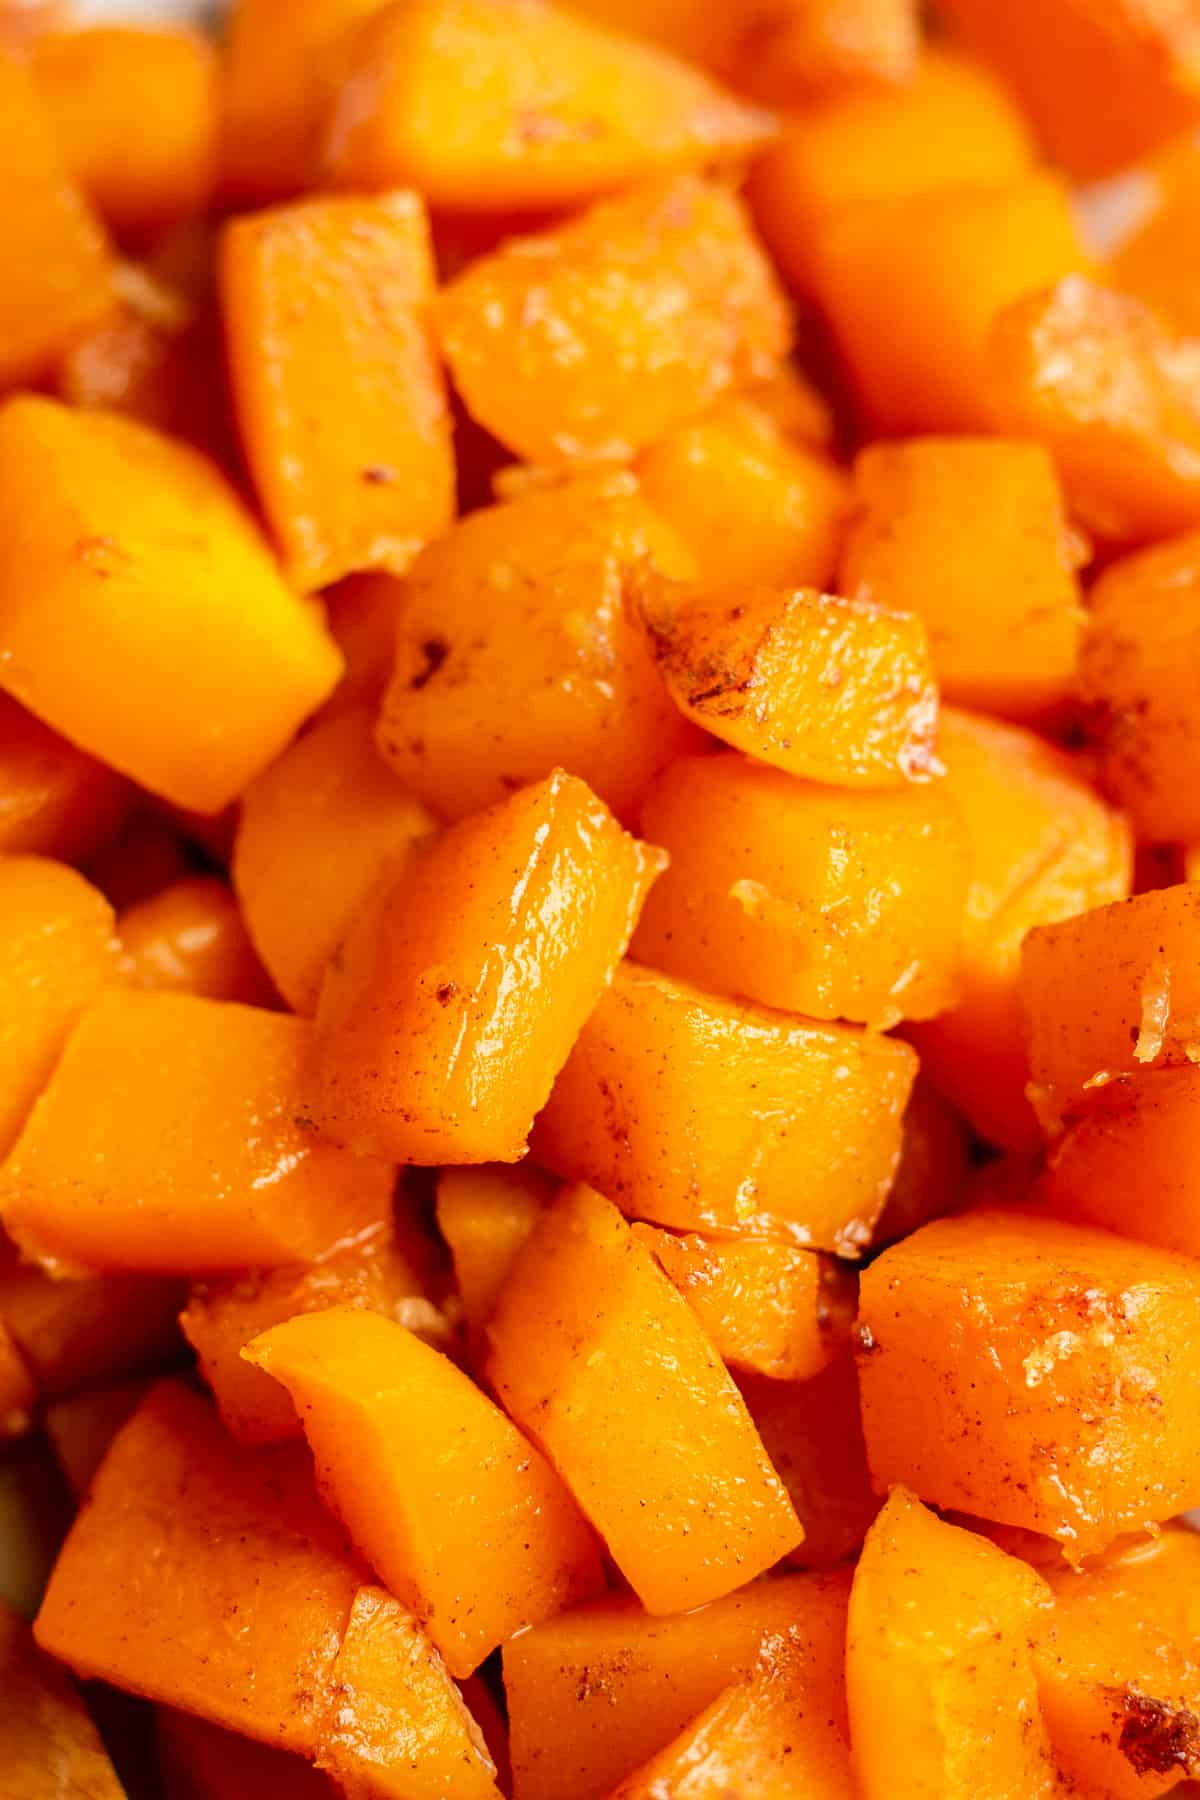 Upclose photo of candied butternut squash